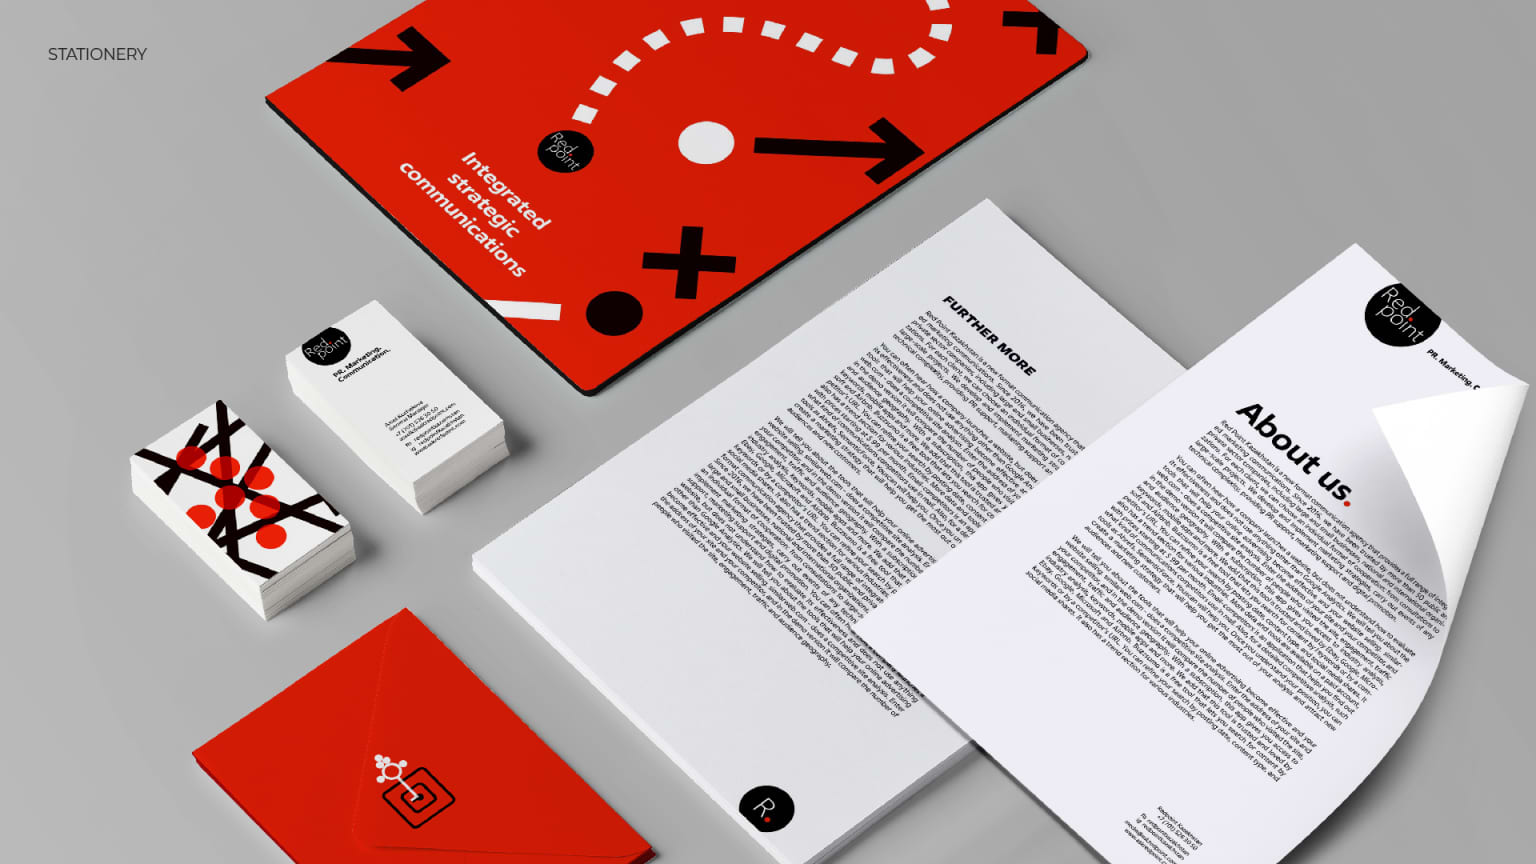 Redpoint communication agency restyling